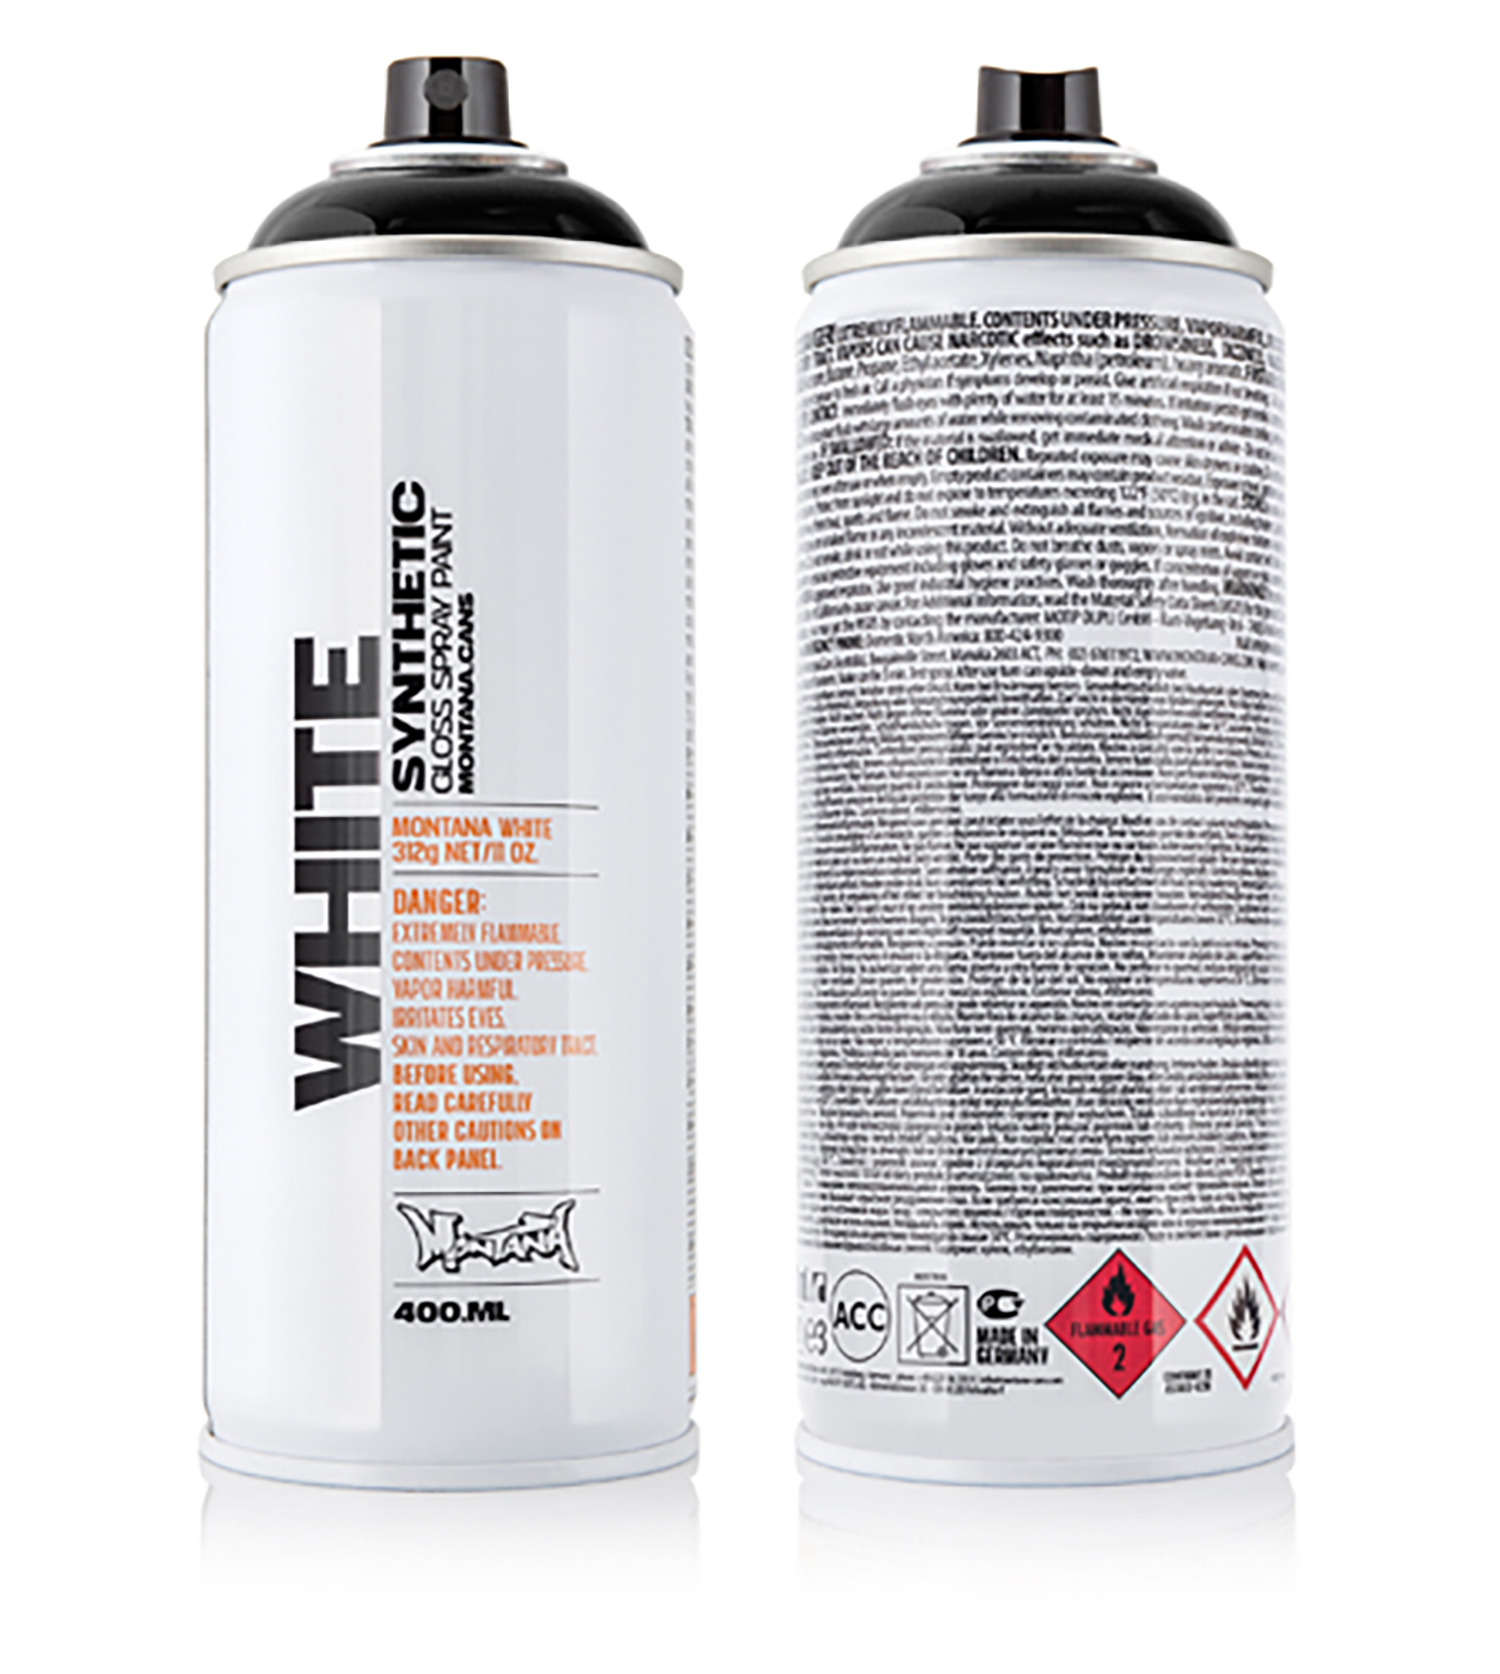 MONTANA-WHITE-SPRAY-400ML-9000